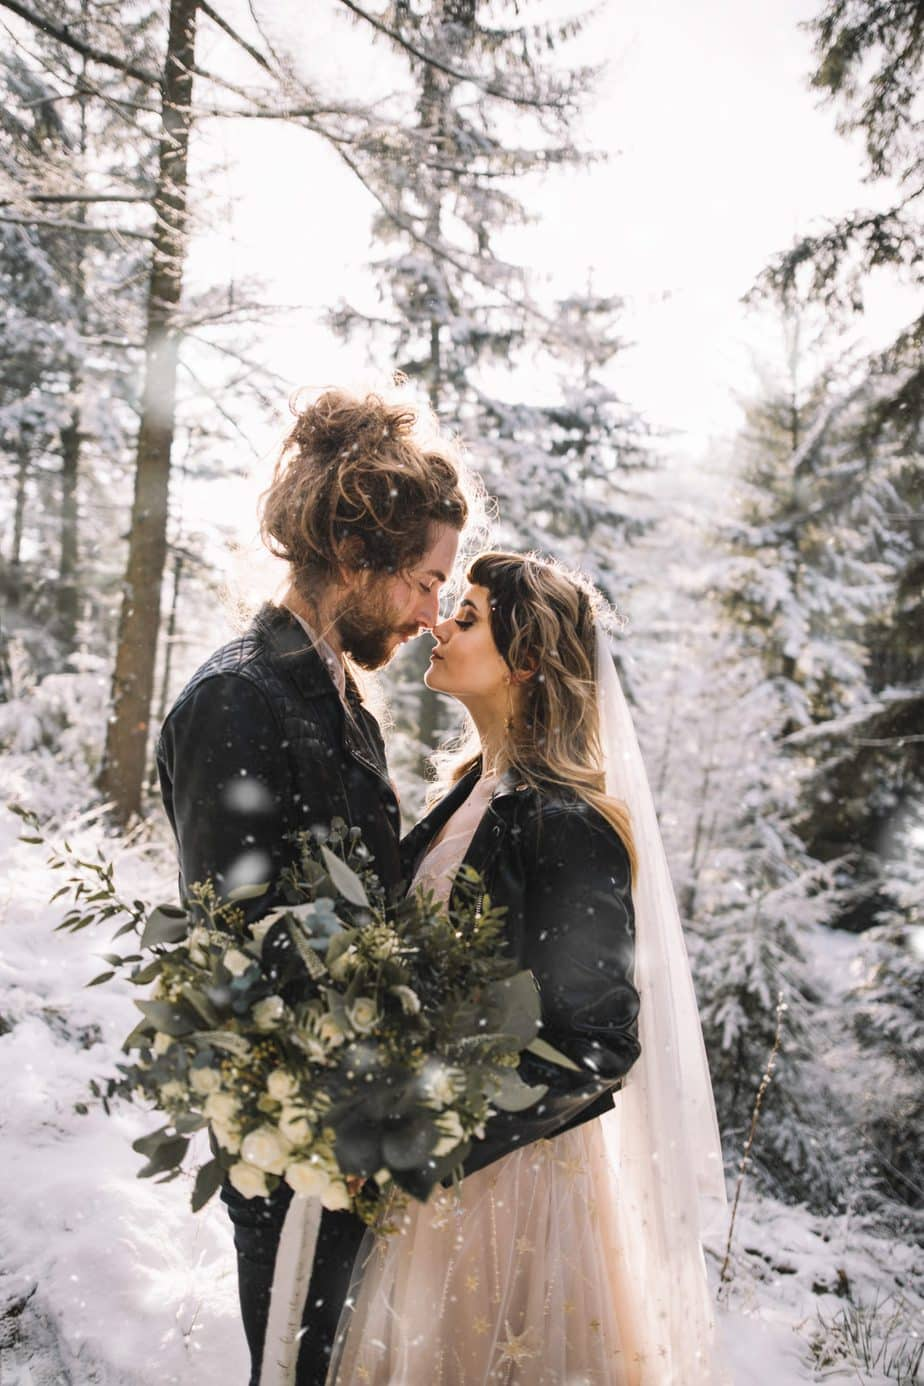 Couple touching noses in a snowy woodland with snow falling around them after they eloped. Bride wearing willowy celestial dress and holding a wild bouquet in green and white tones.